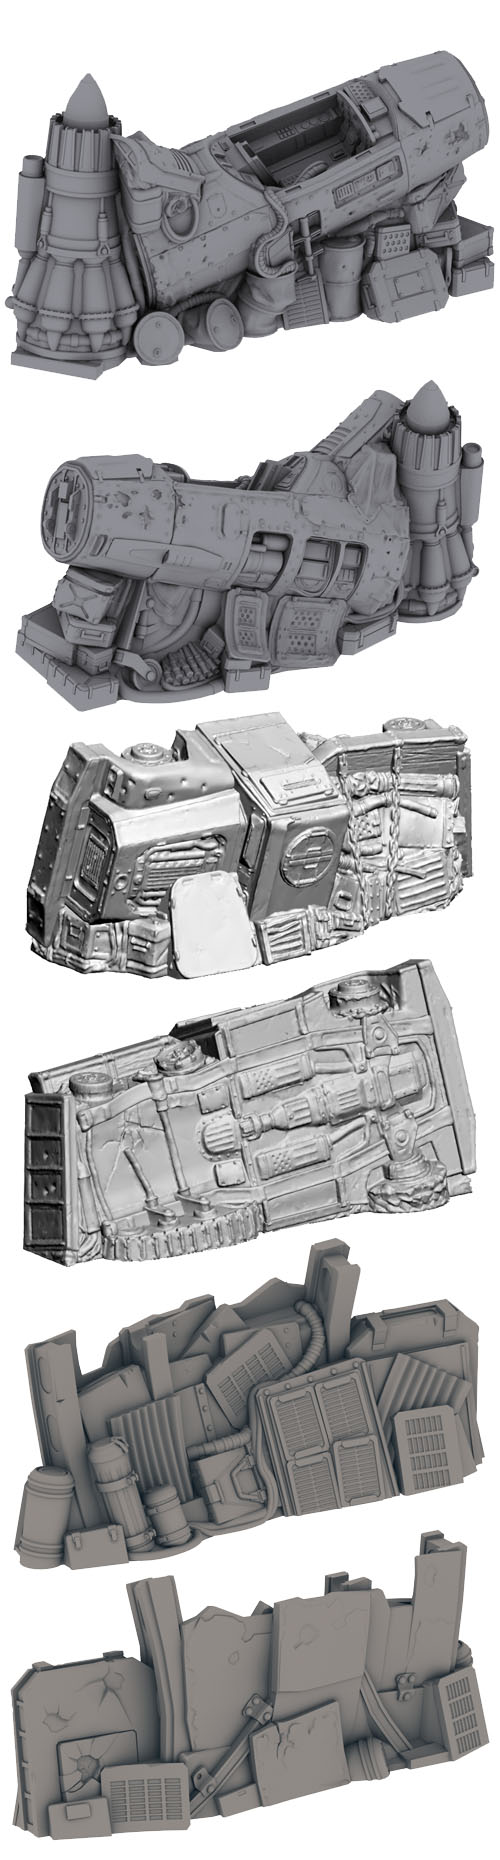 Terrain: Scrap Yard - Barricades